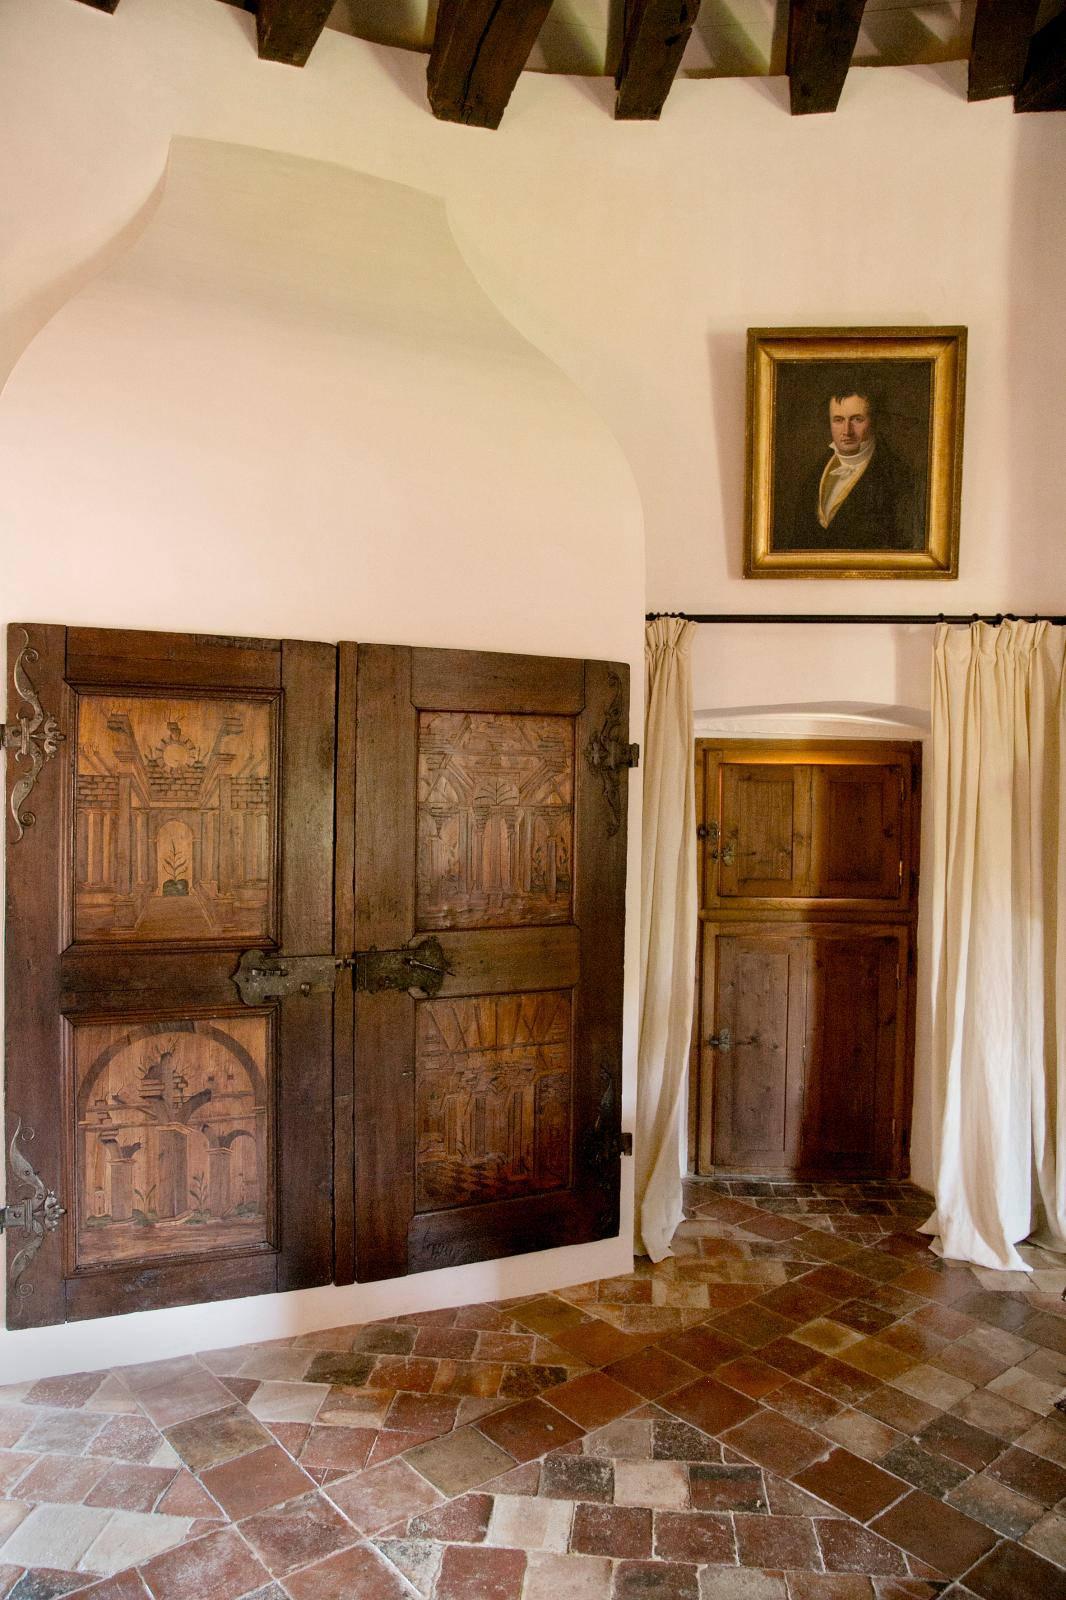 A pair of 16th century German doors at Château Lagrézette, Alain-Dominique Perrin's estate.